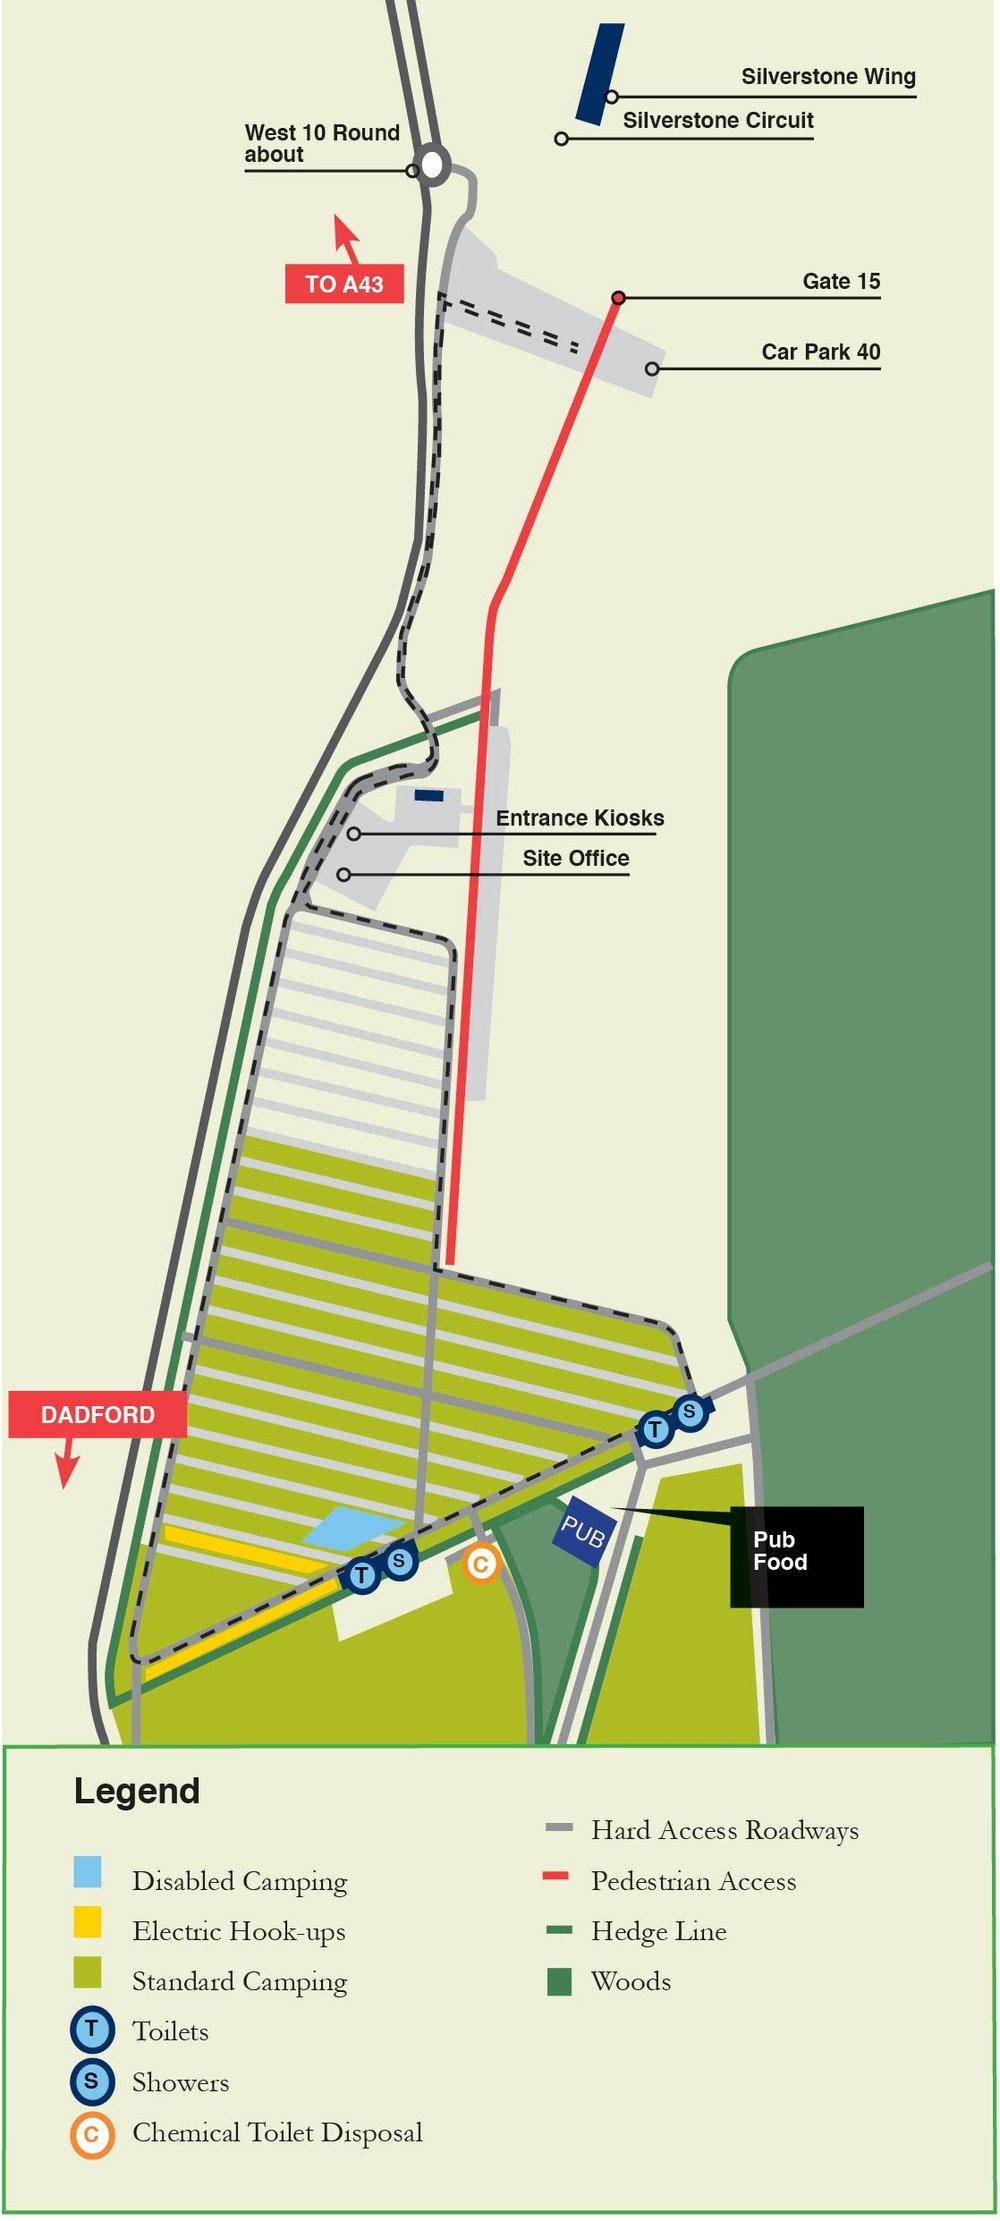 Map--BSB-at-silverstone-woodlands-campsite-1200w.jpg